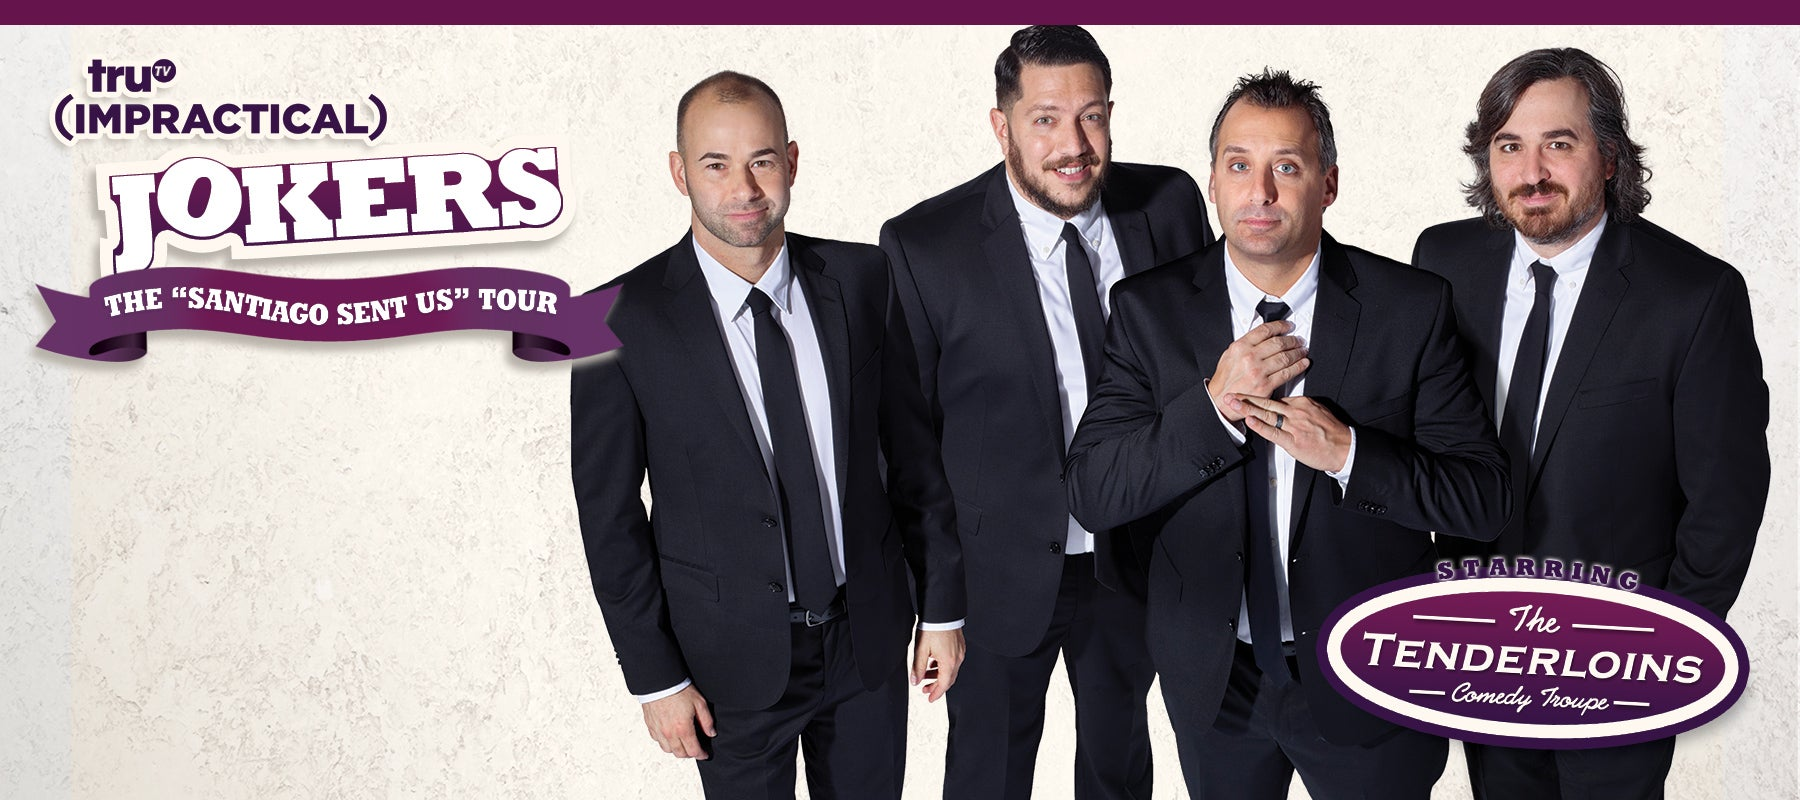 Impractical jokers altria theater official website m4hsunfo